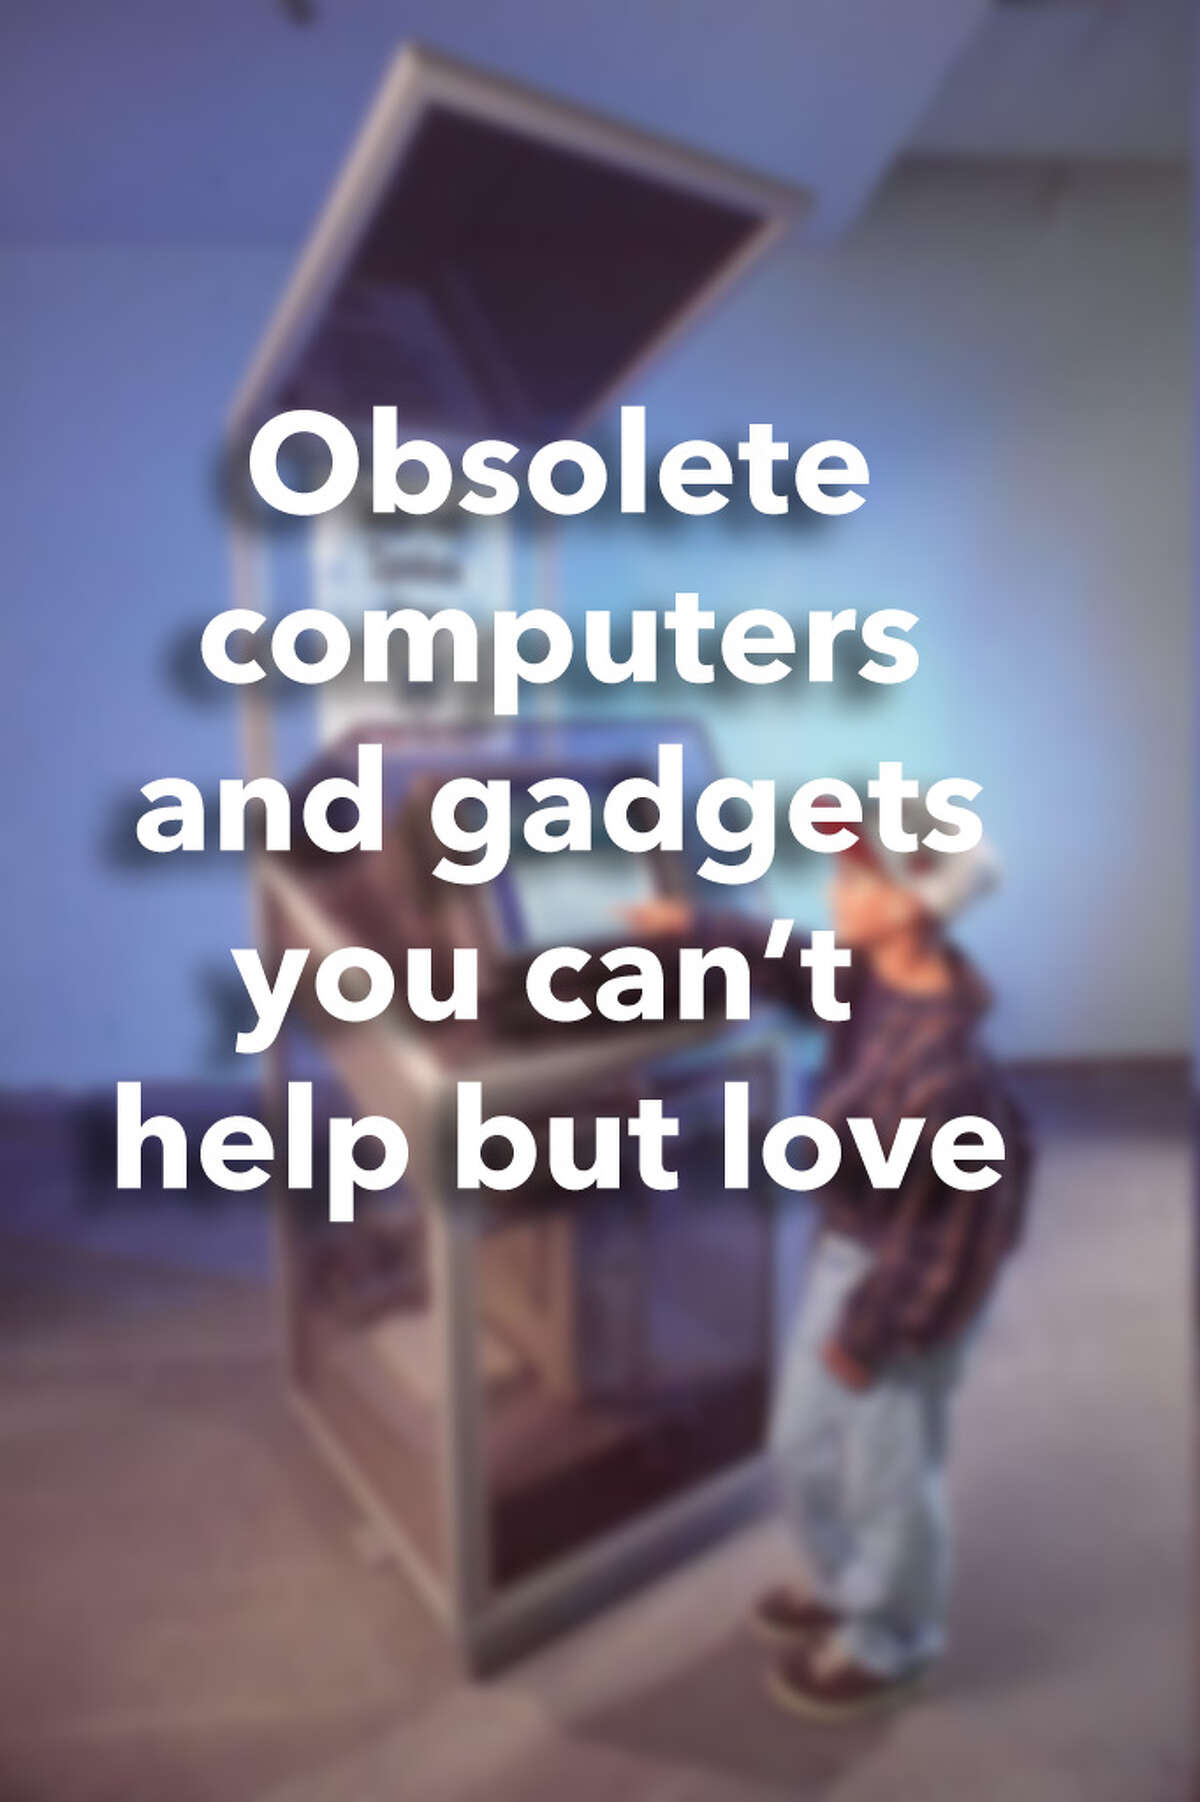 Obsolete computers and gadgets you can't help but love.